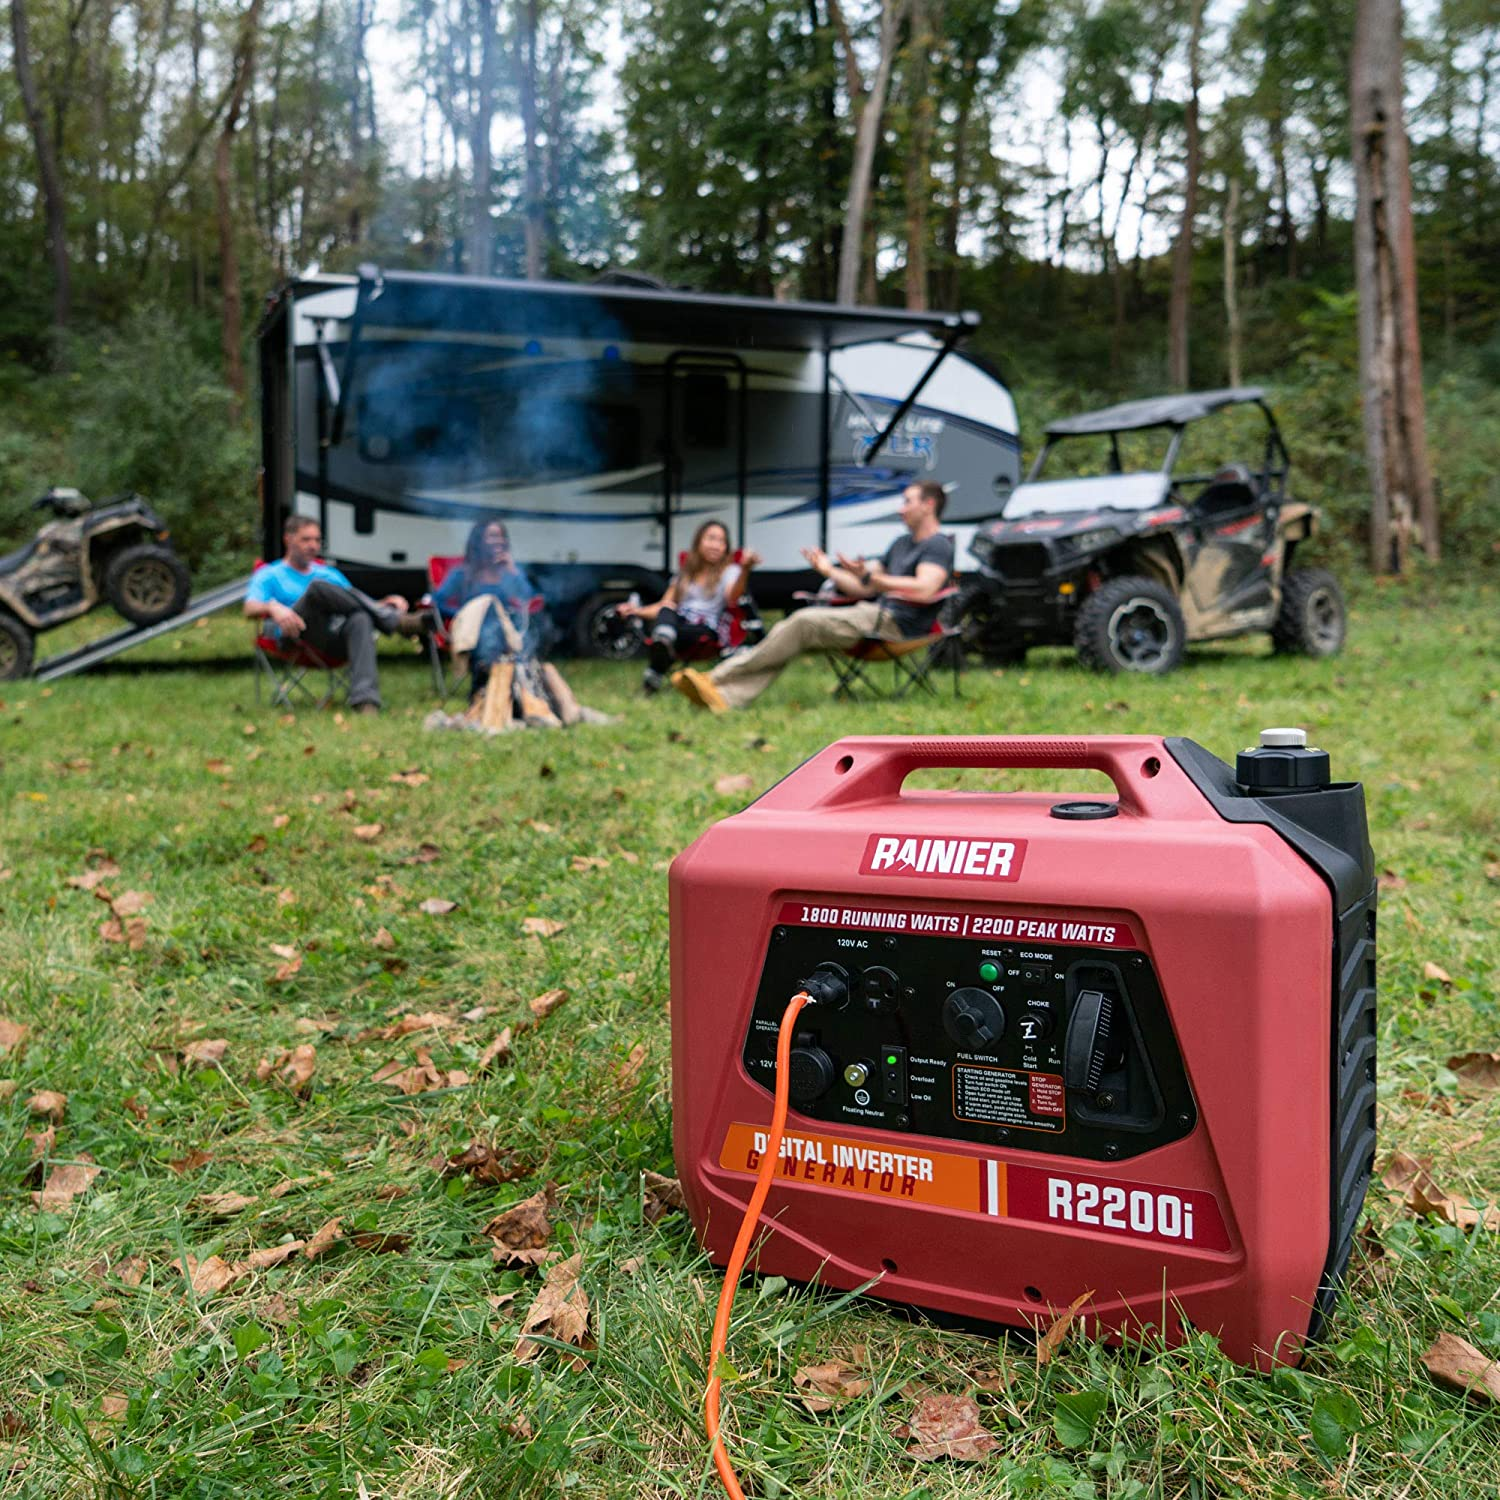 Rainier R2200i Super Quiet Portable Inverter Generator – 1800 Running 2200 Peak – Gas Powered – CARB Compliant